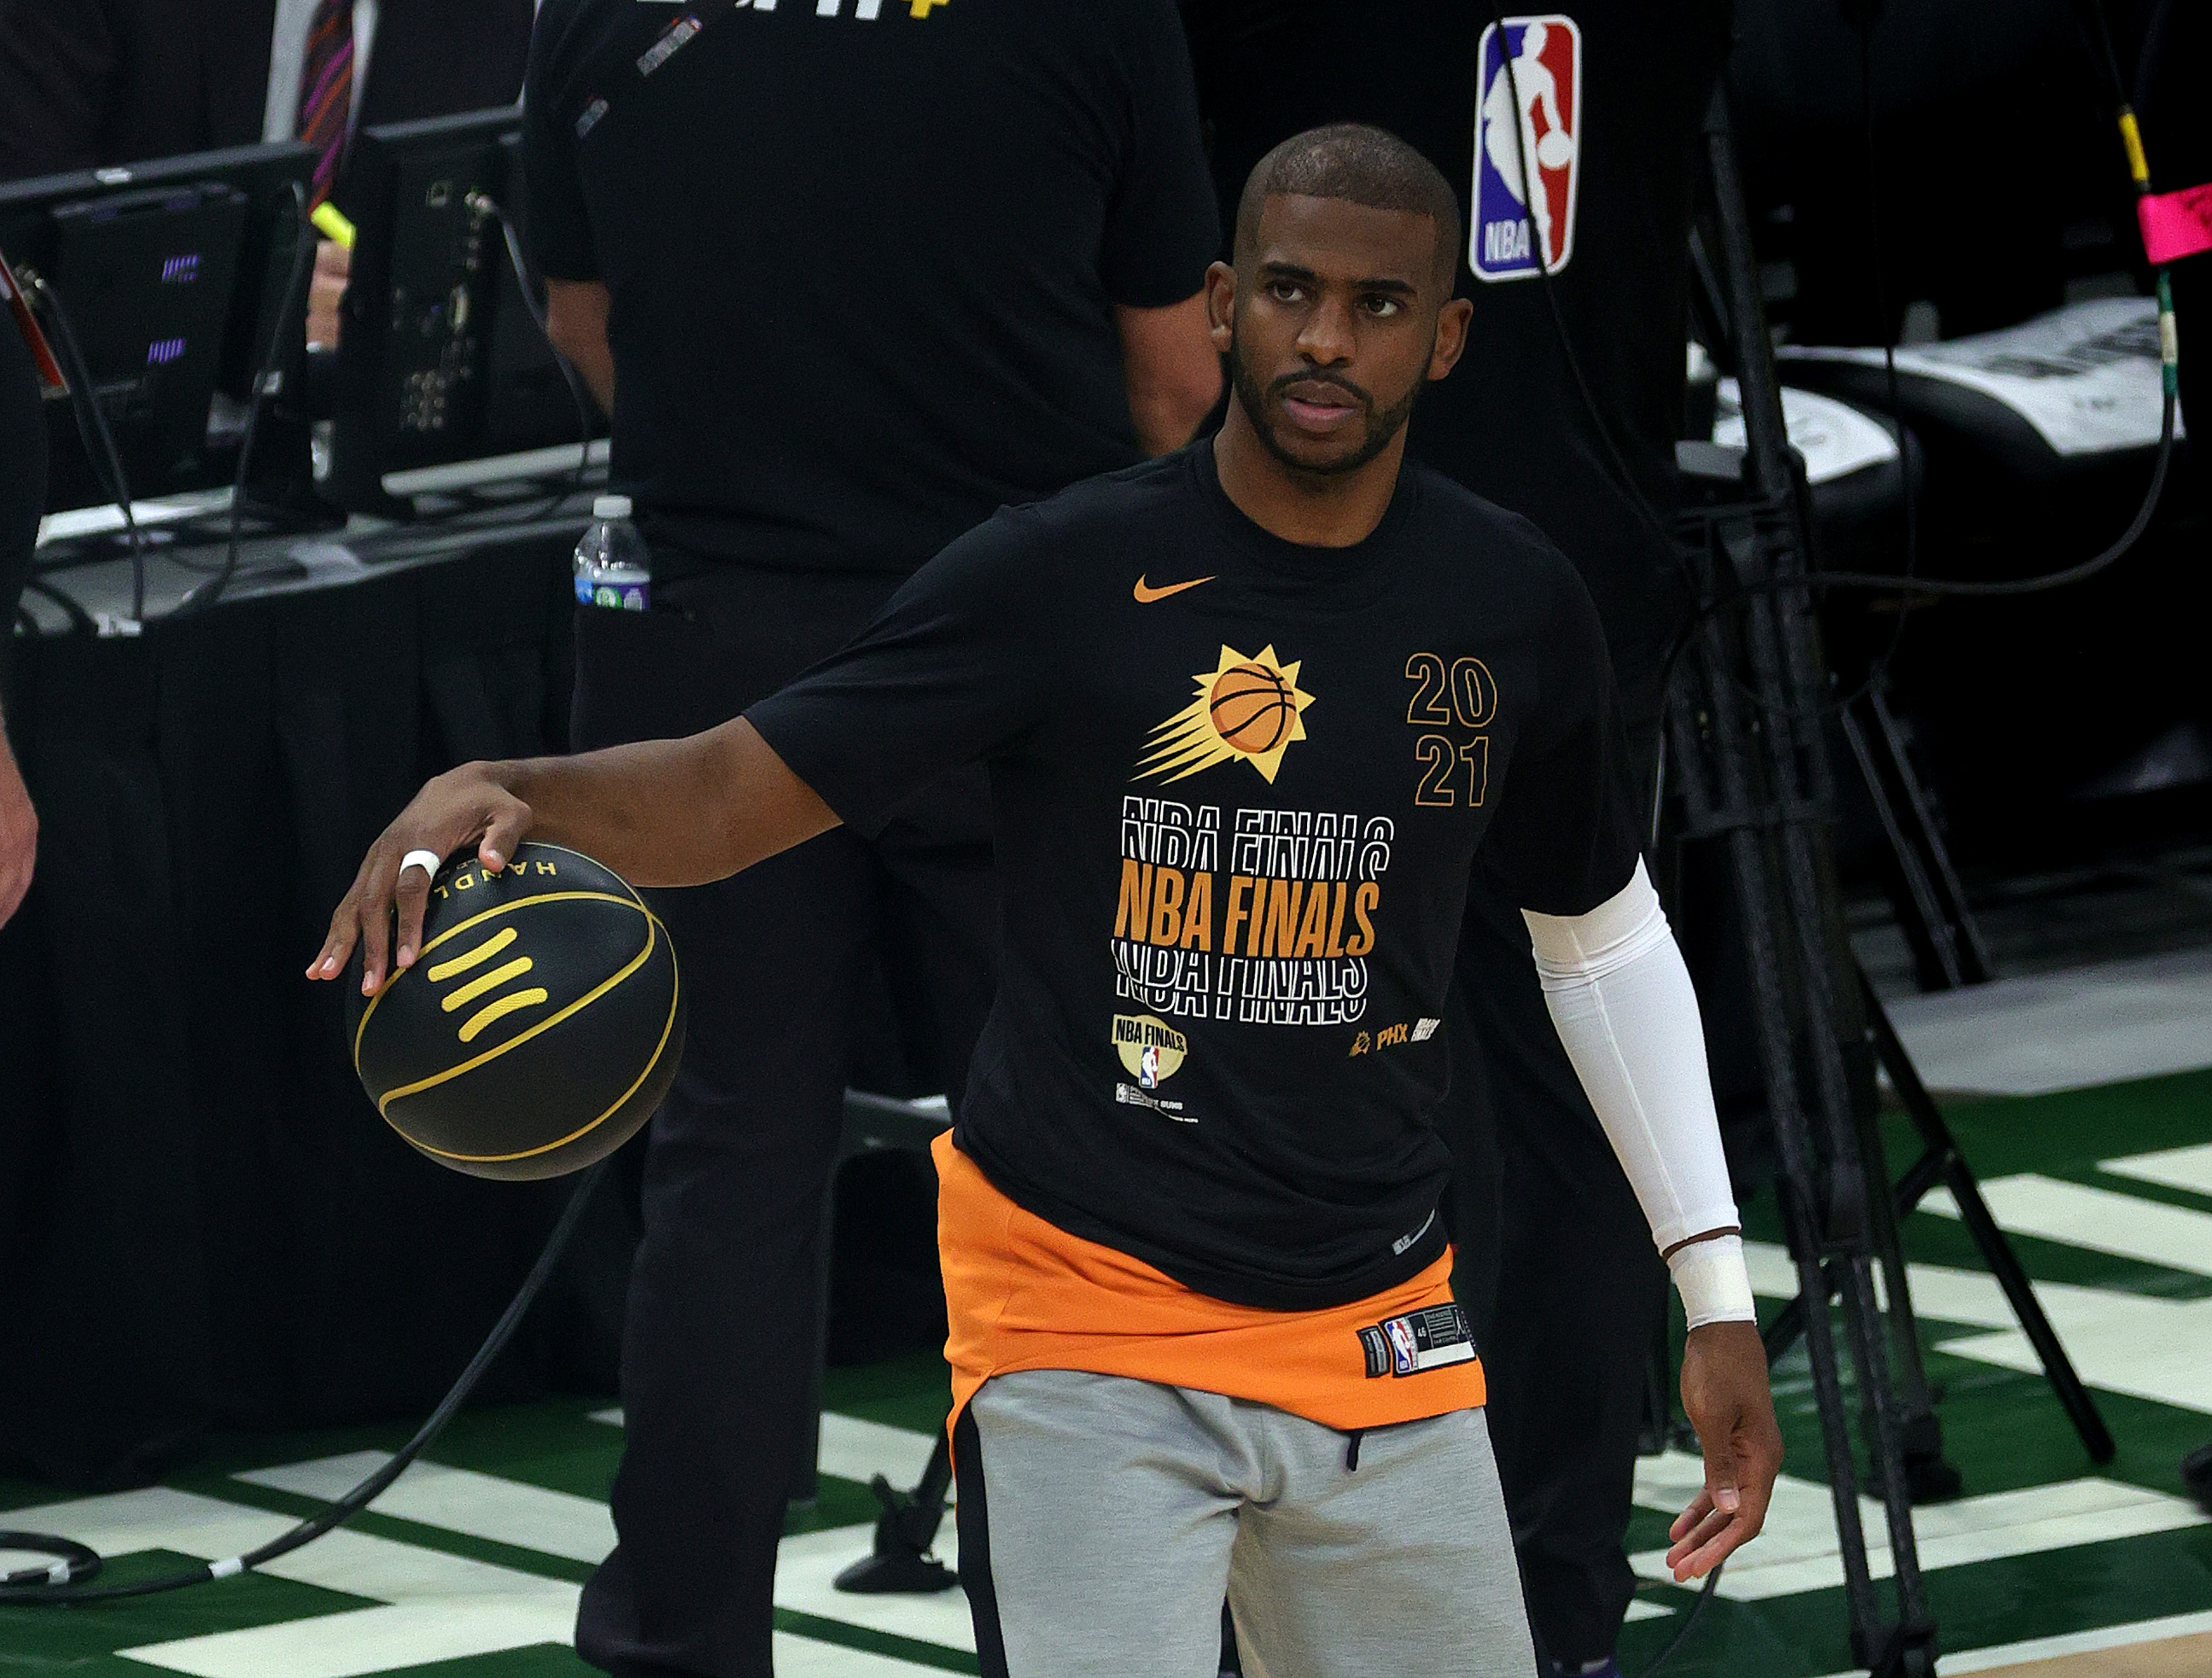 Chris Paul of the Phoenix Suns warms up before Game Four of the NBA Finals against the Milwaukee Bucks at Fiserv Forum on July 14, 2021 in Milwaukee, Wisconsin.